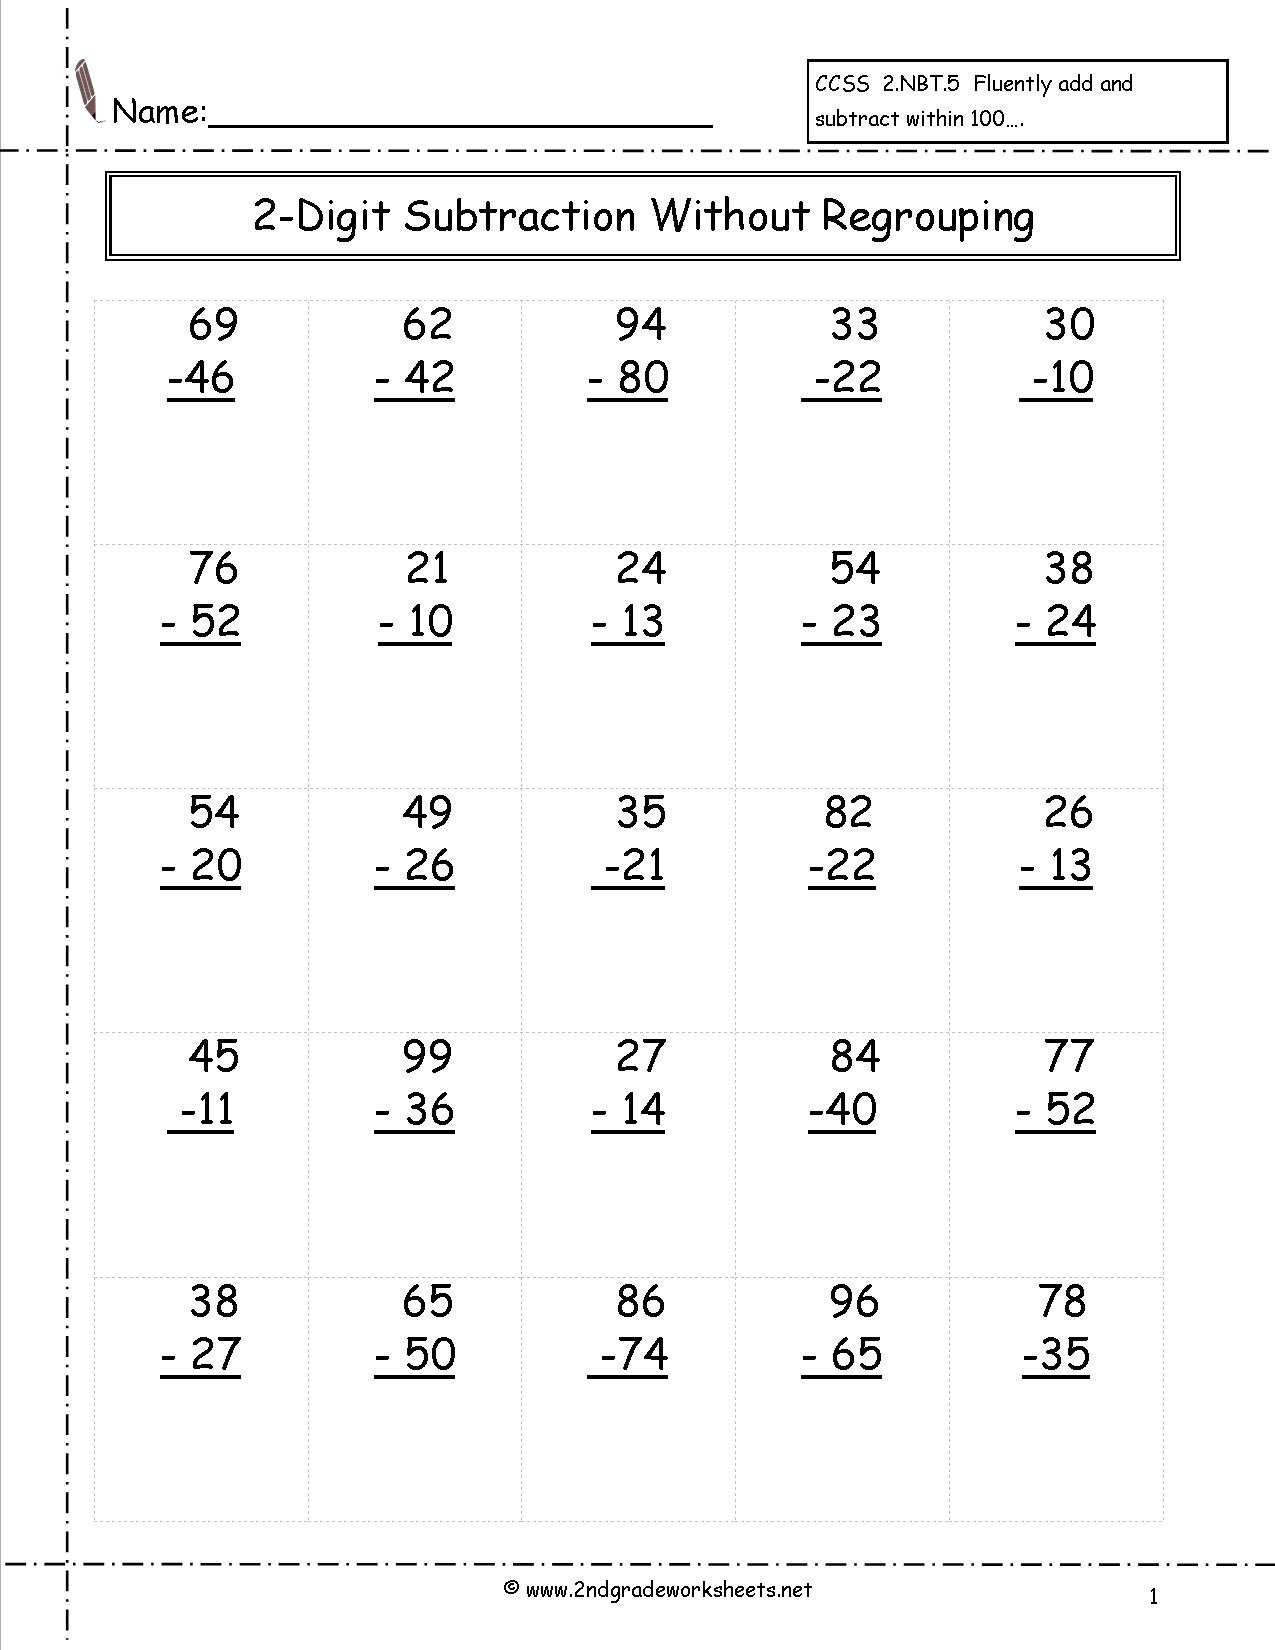 Math Worksheets For 2nd Grade Subtraction Regrouping 1122265